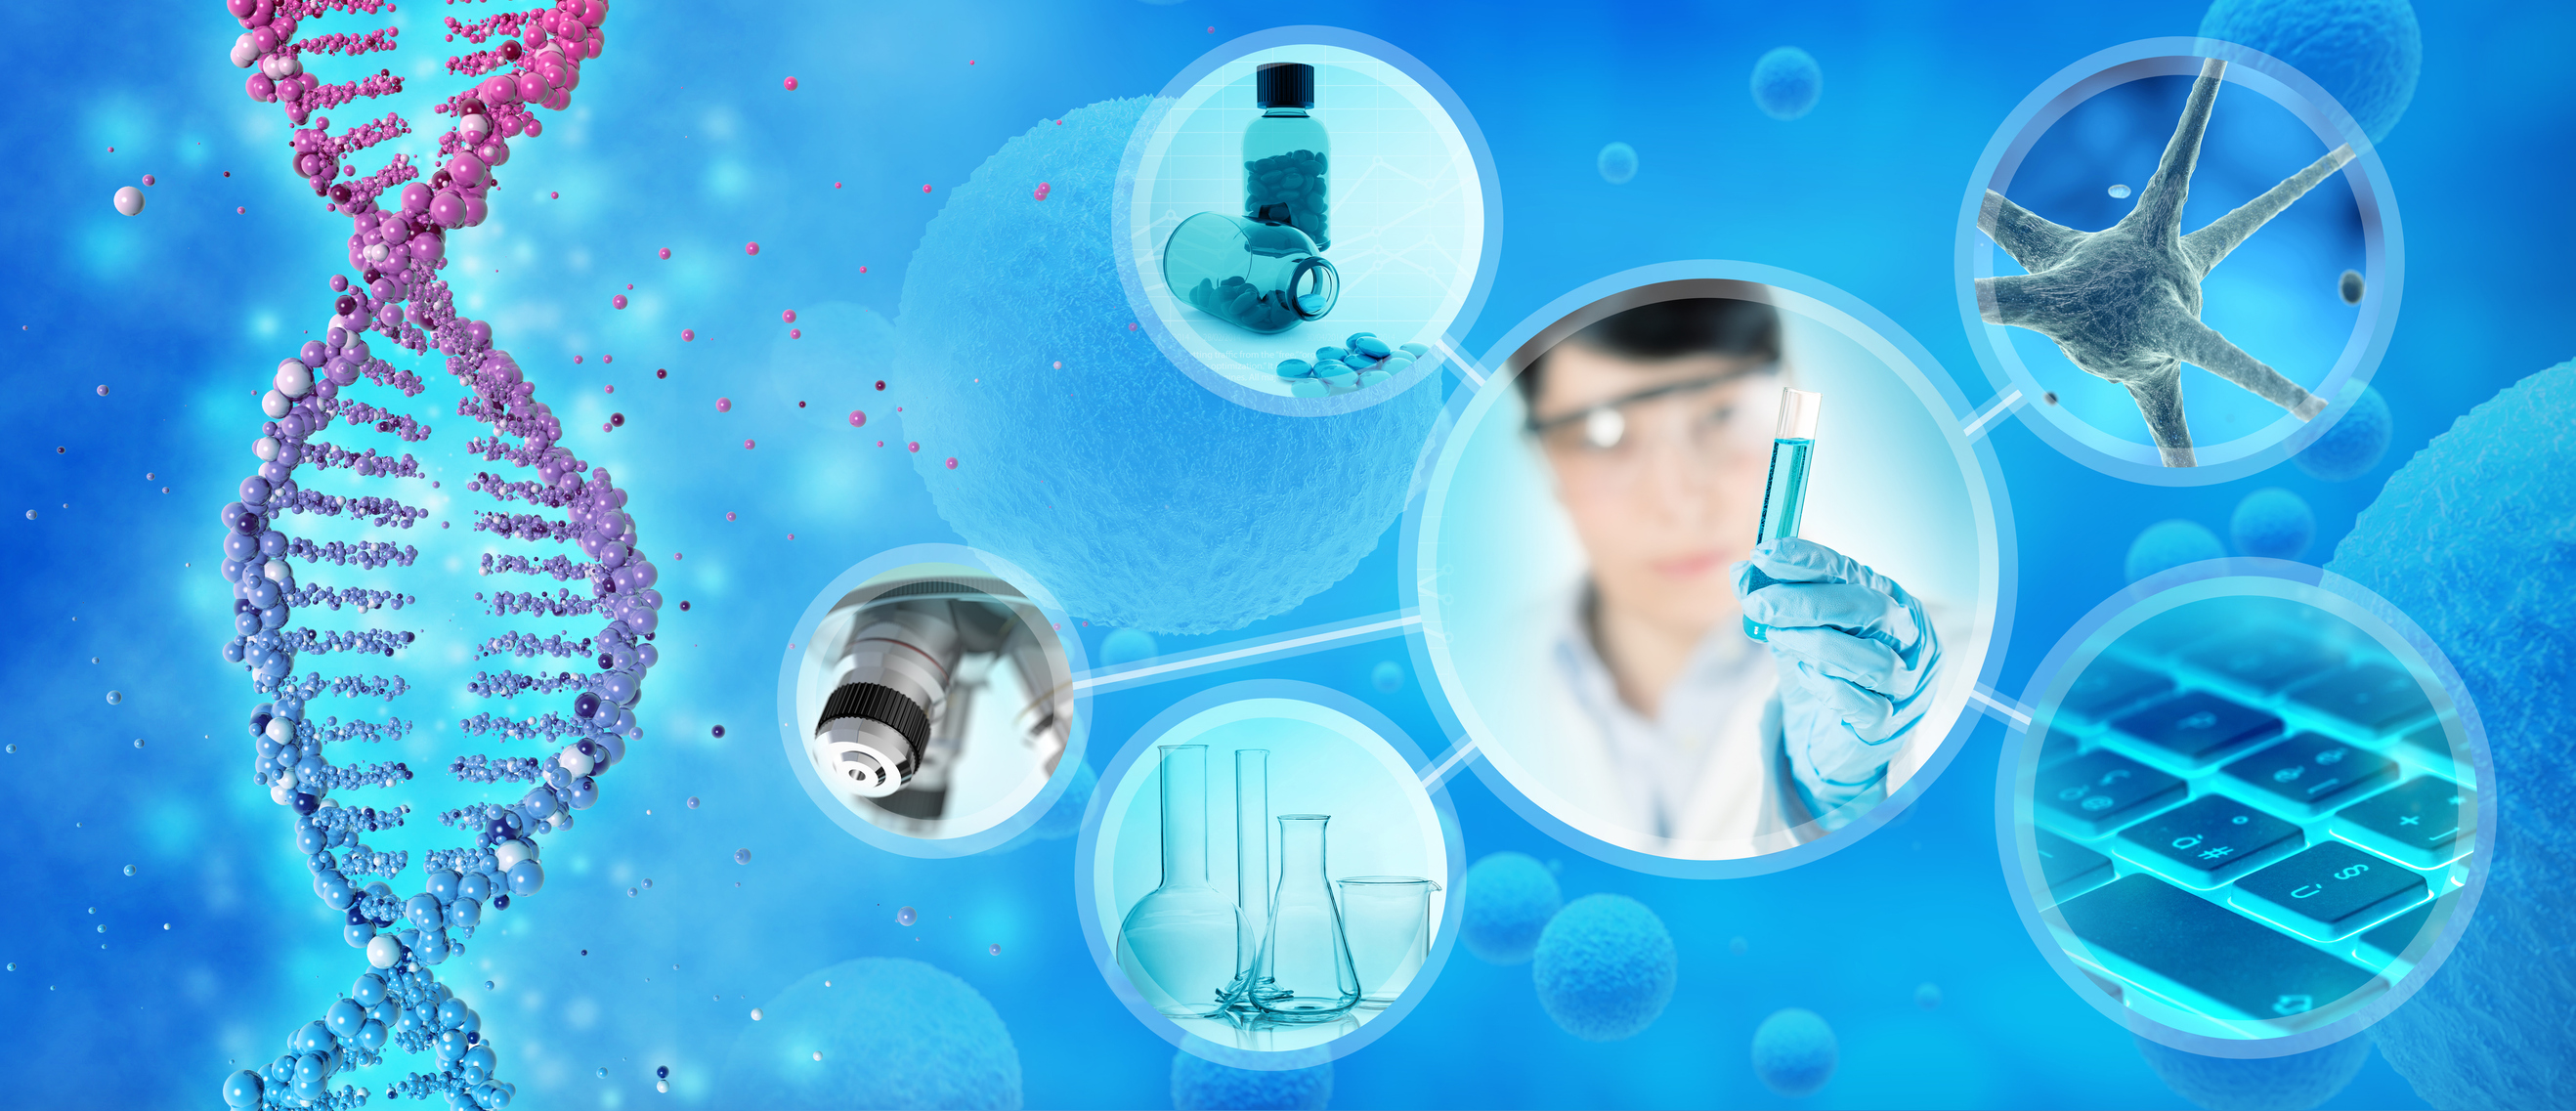 Molecular Diagnostics Market Analysis by Emerging Growth Factors and Revenue Forecast to 2031